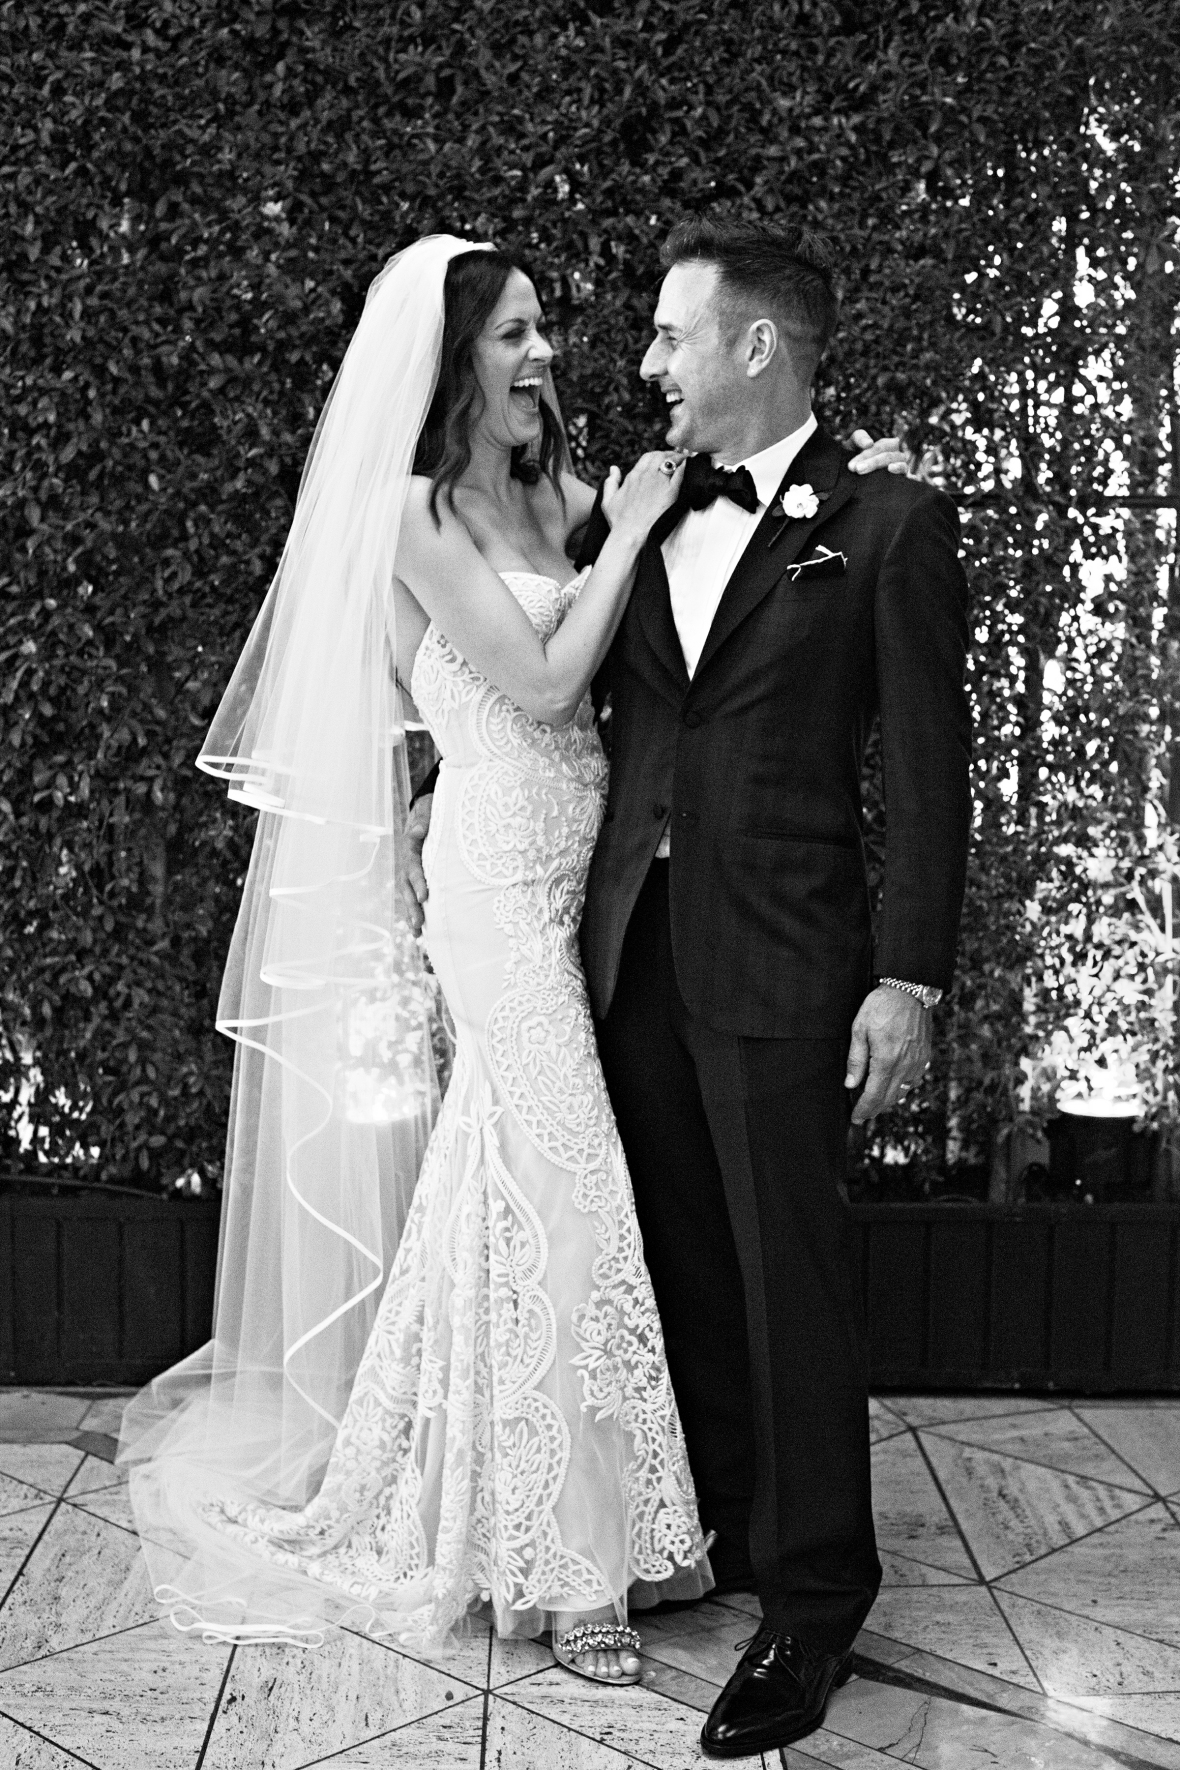 david arquette and christina mclarty wedding